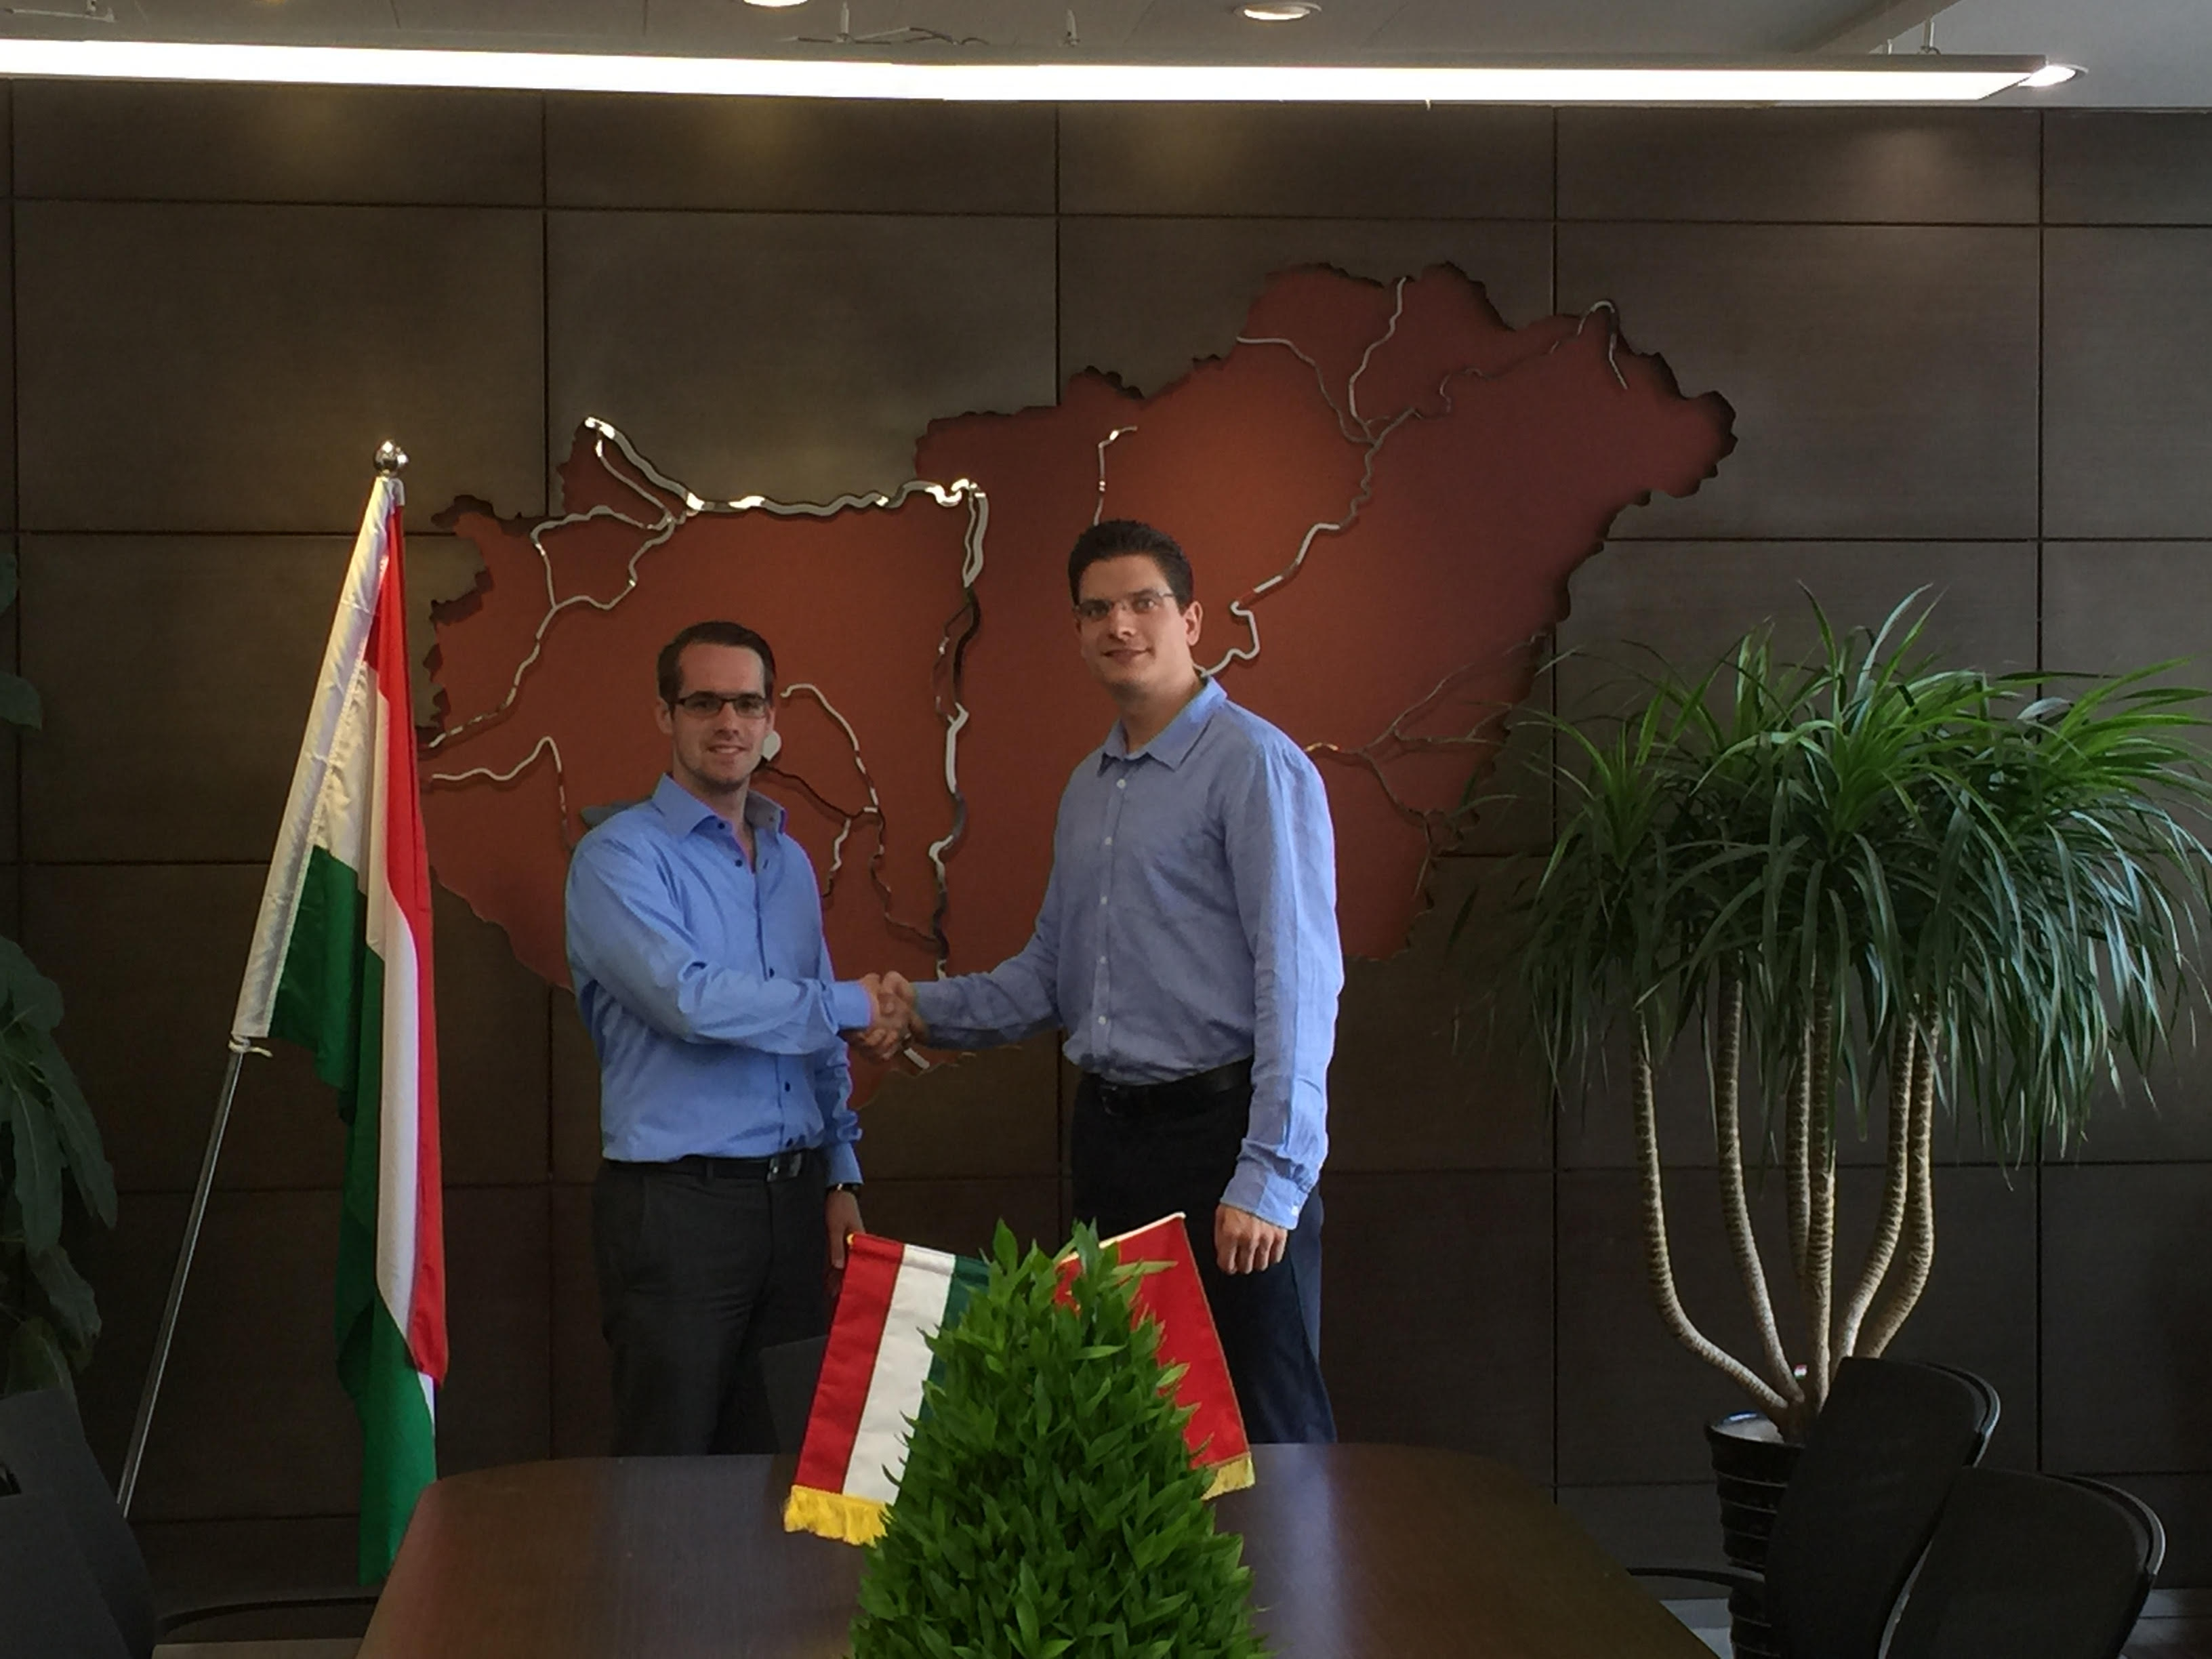 Visits organized by the Hungarian Consulate in Shanghai